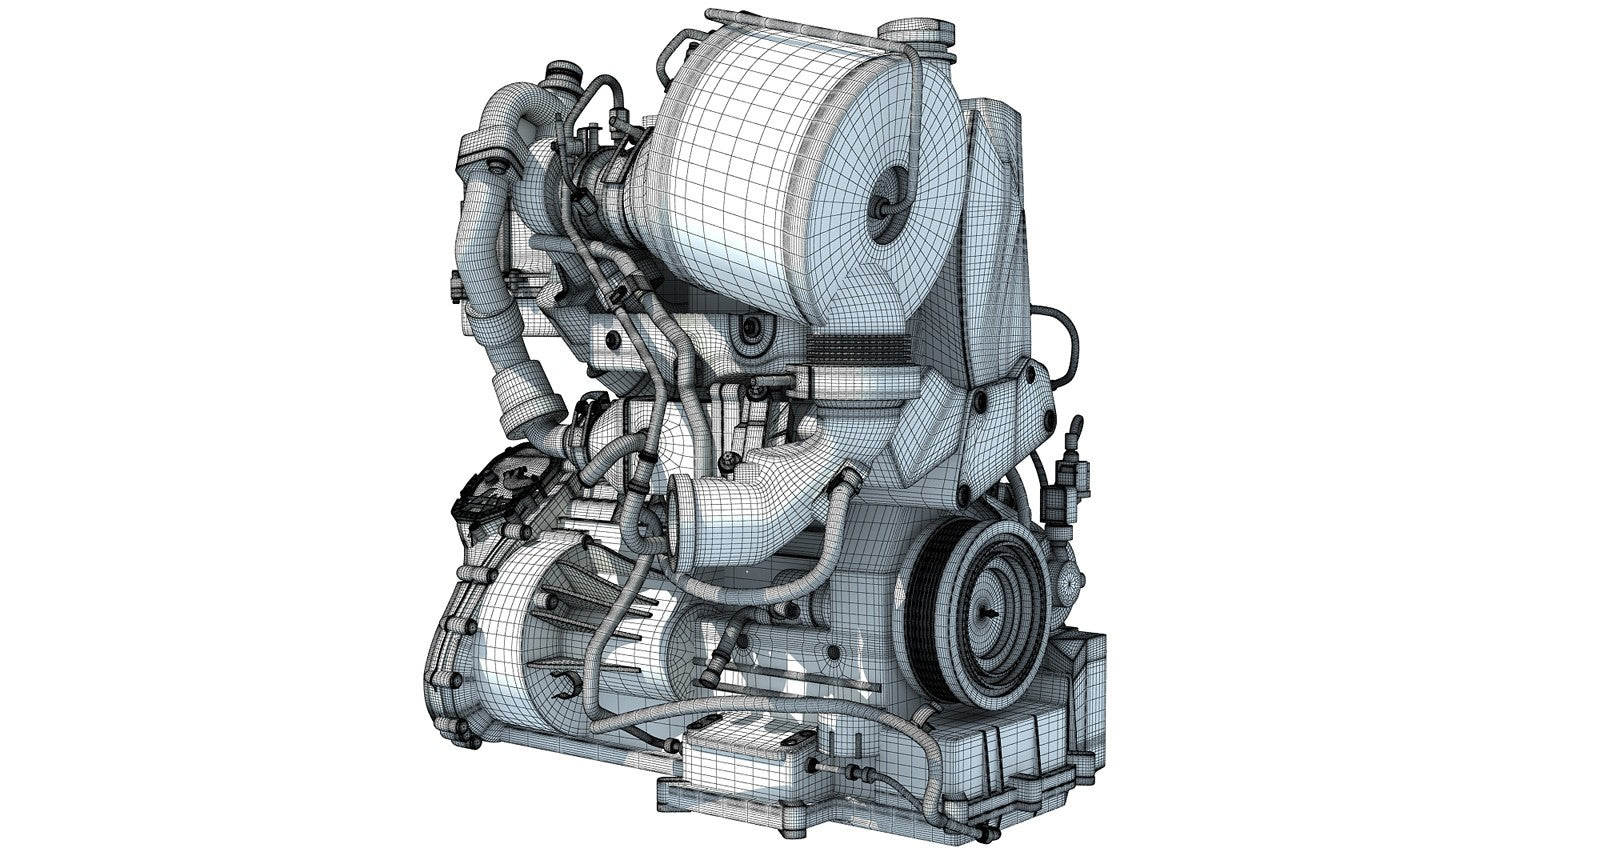 Volkswagen Engine 3D Model